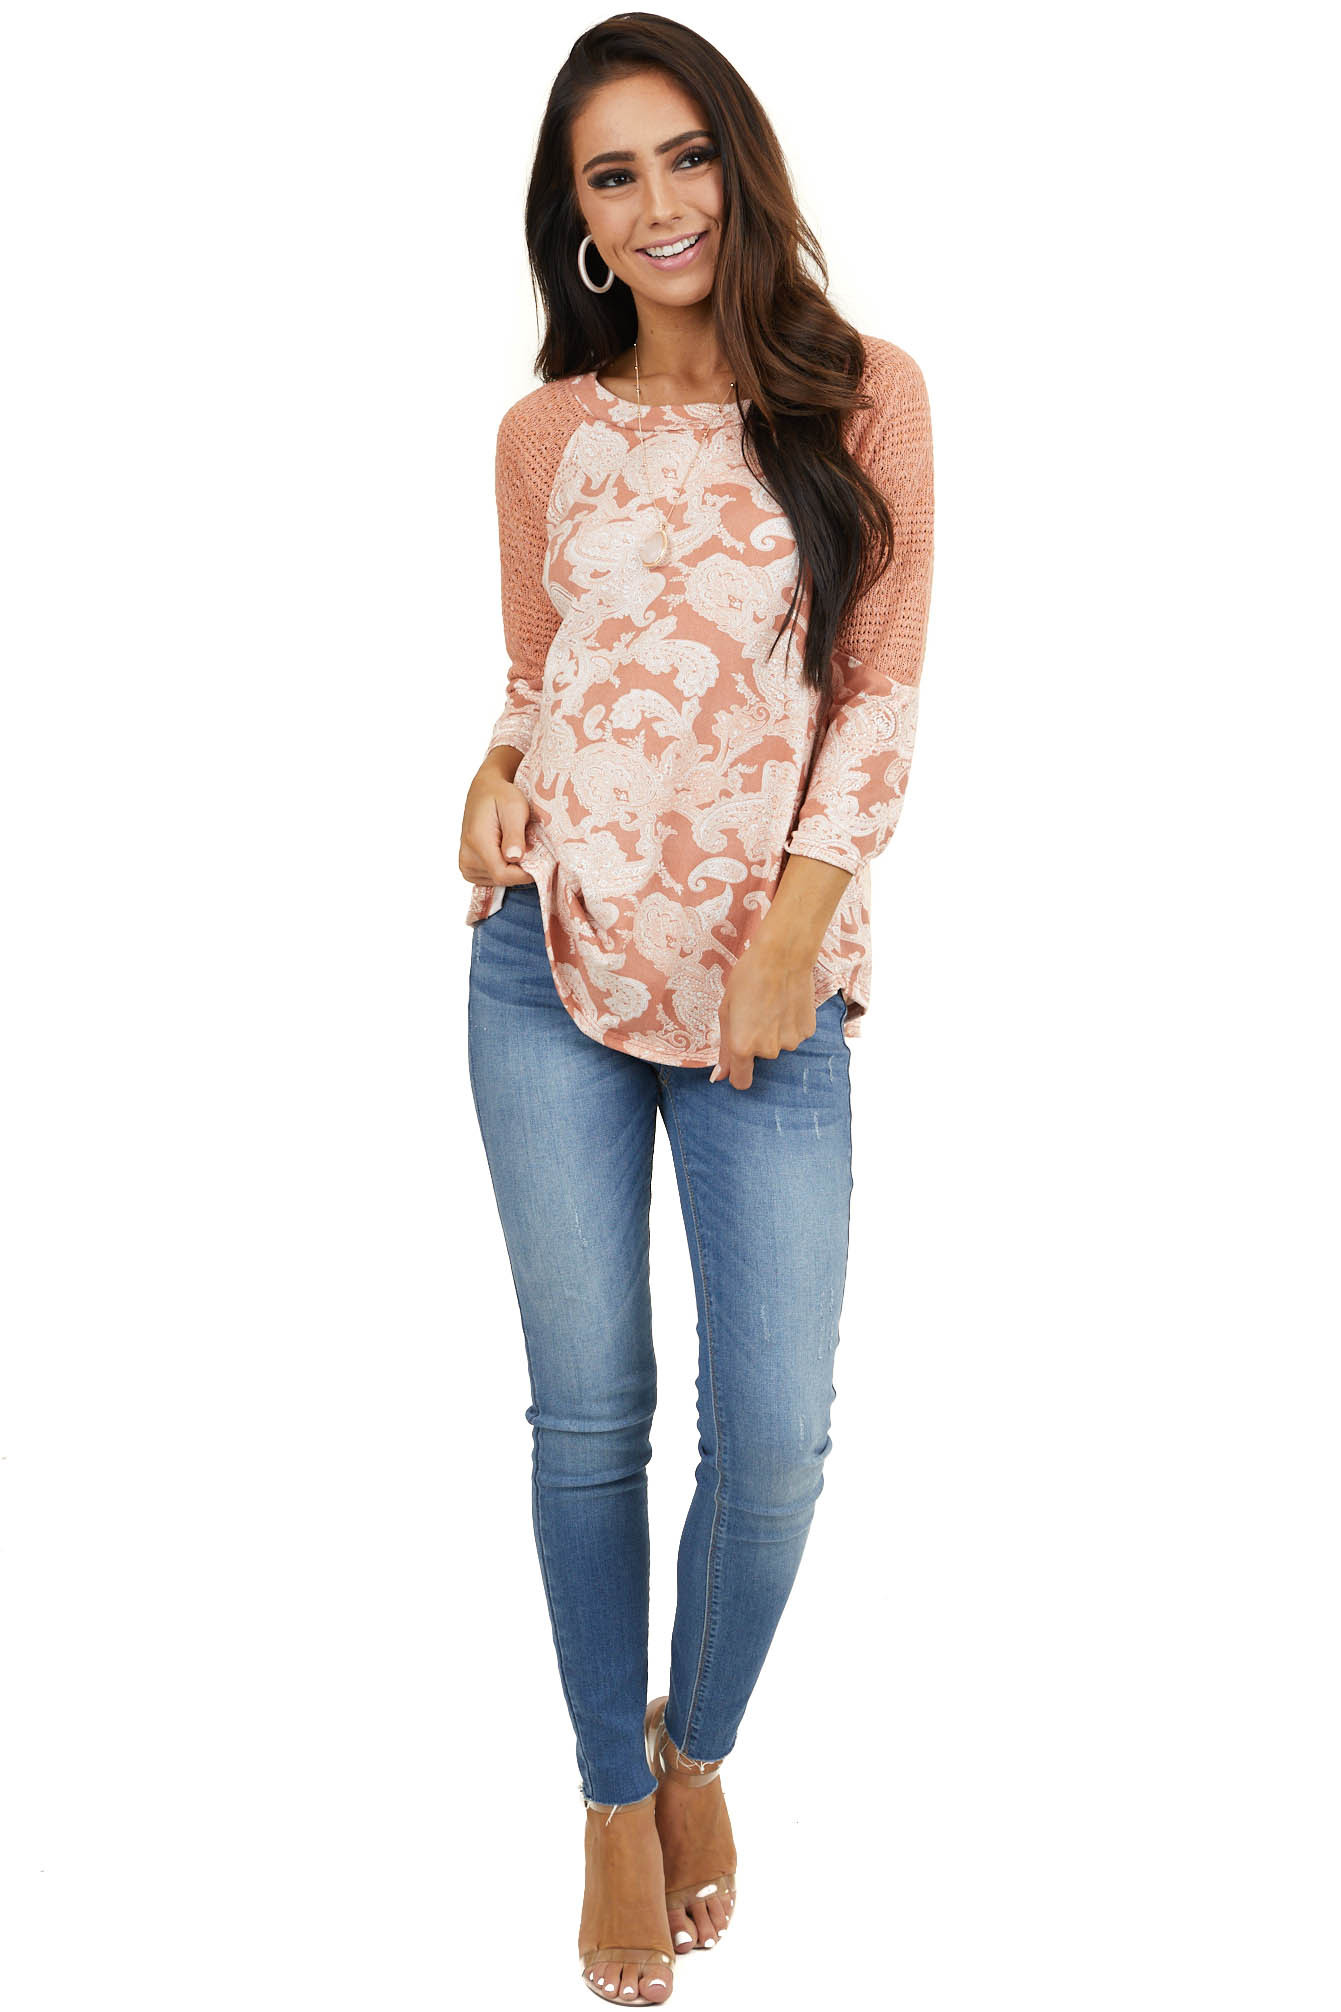 Dark Peach Super Soft Paisley Print Top with 3/4 Sleeves